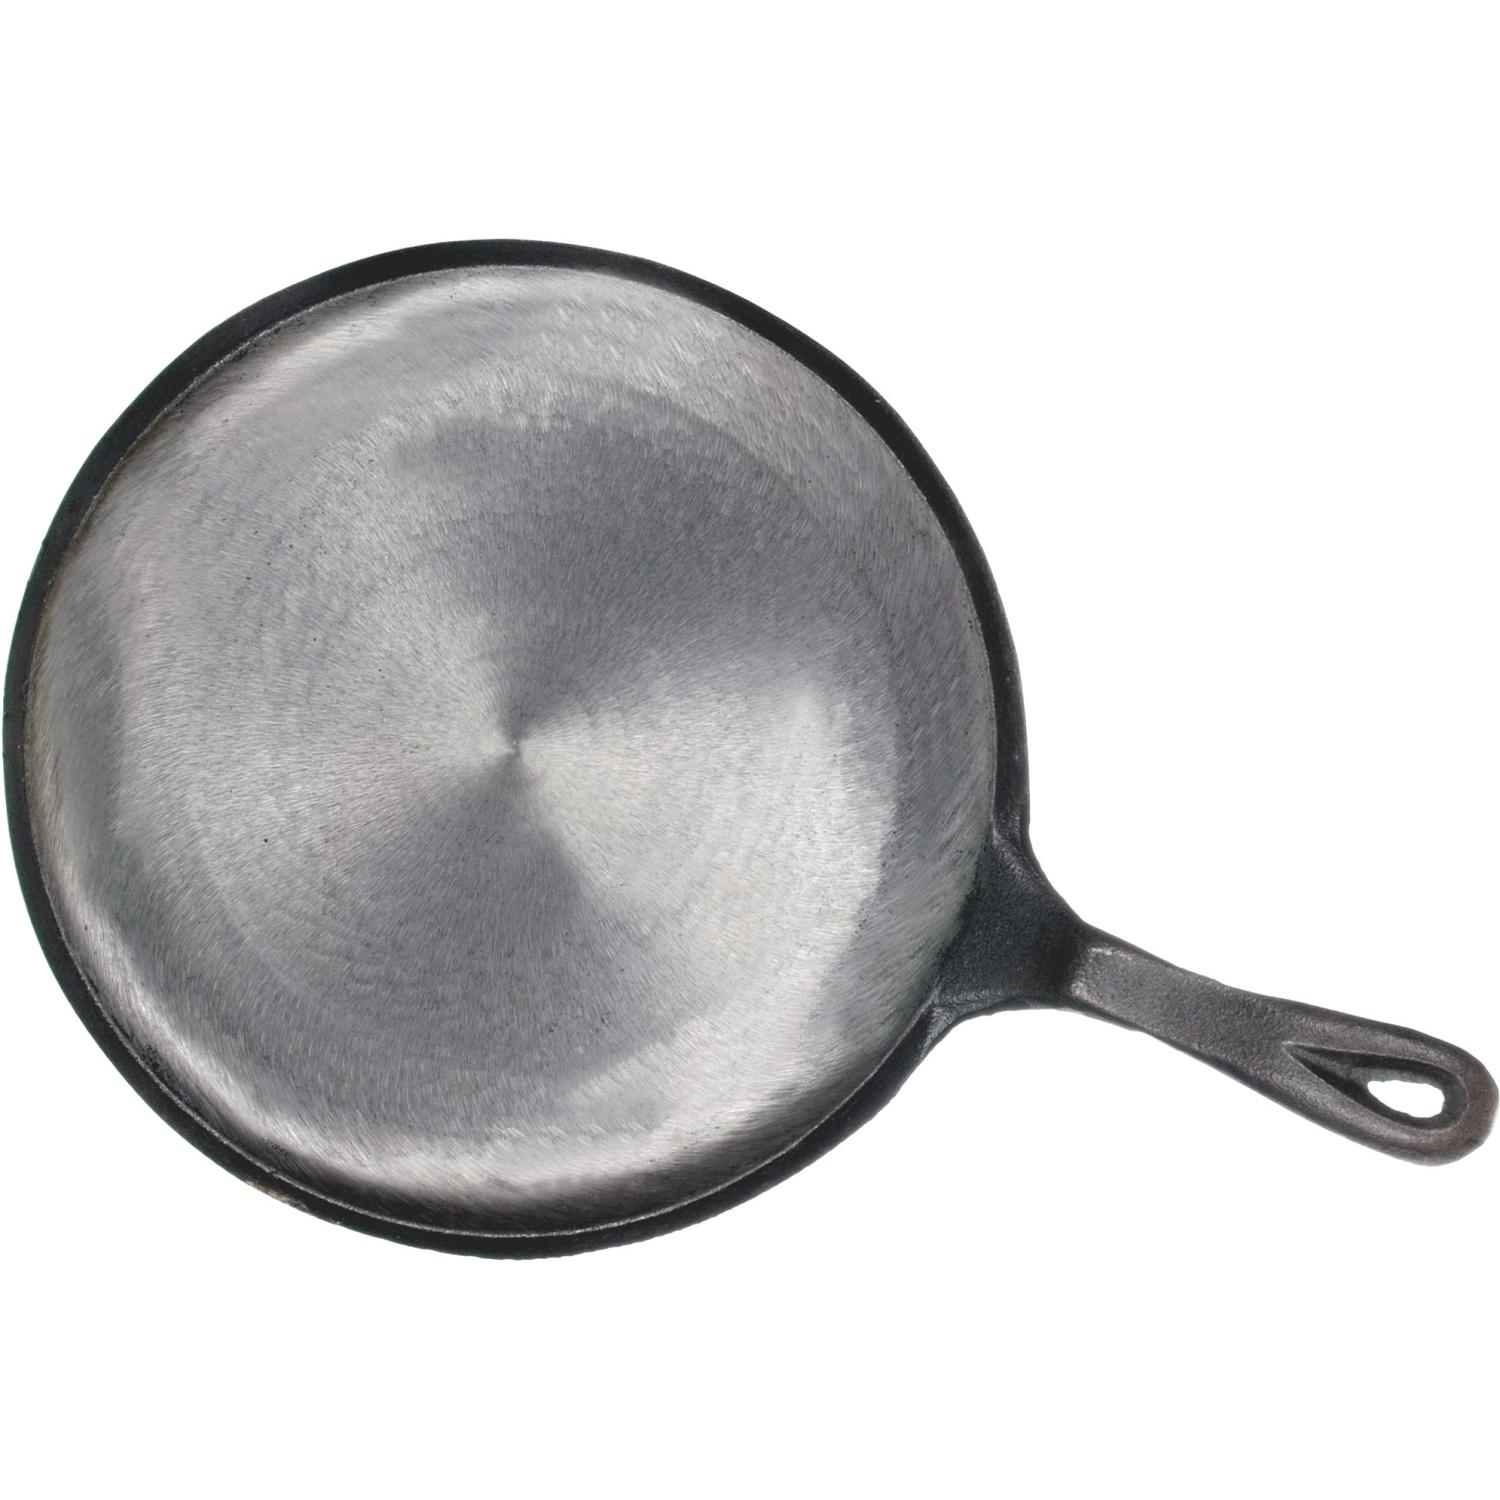 Cajun Cookware 10 Inch Round Seasoned Cast Iron Griddle